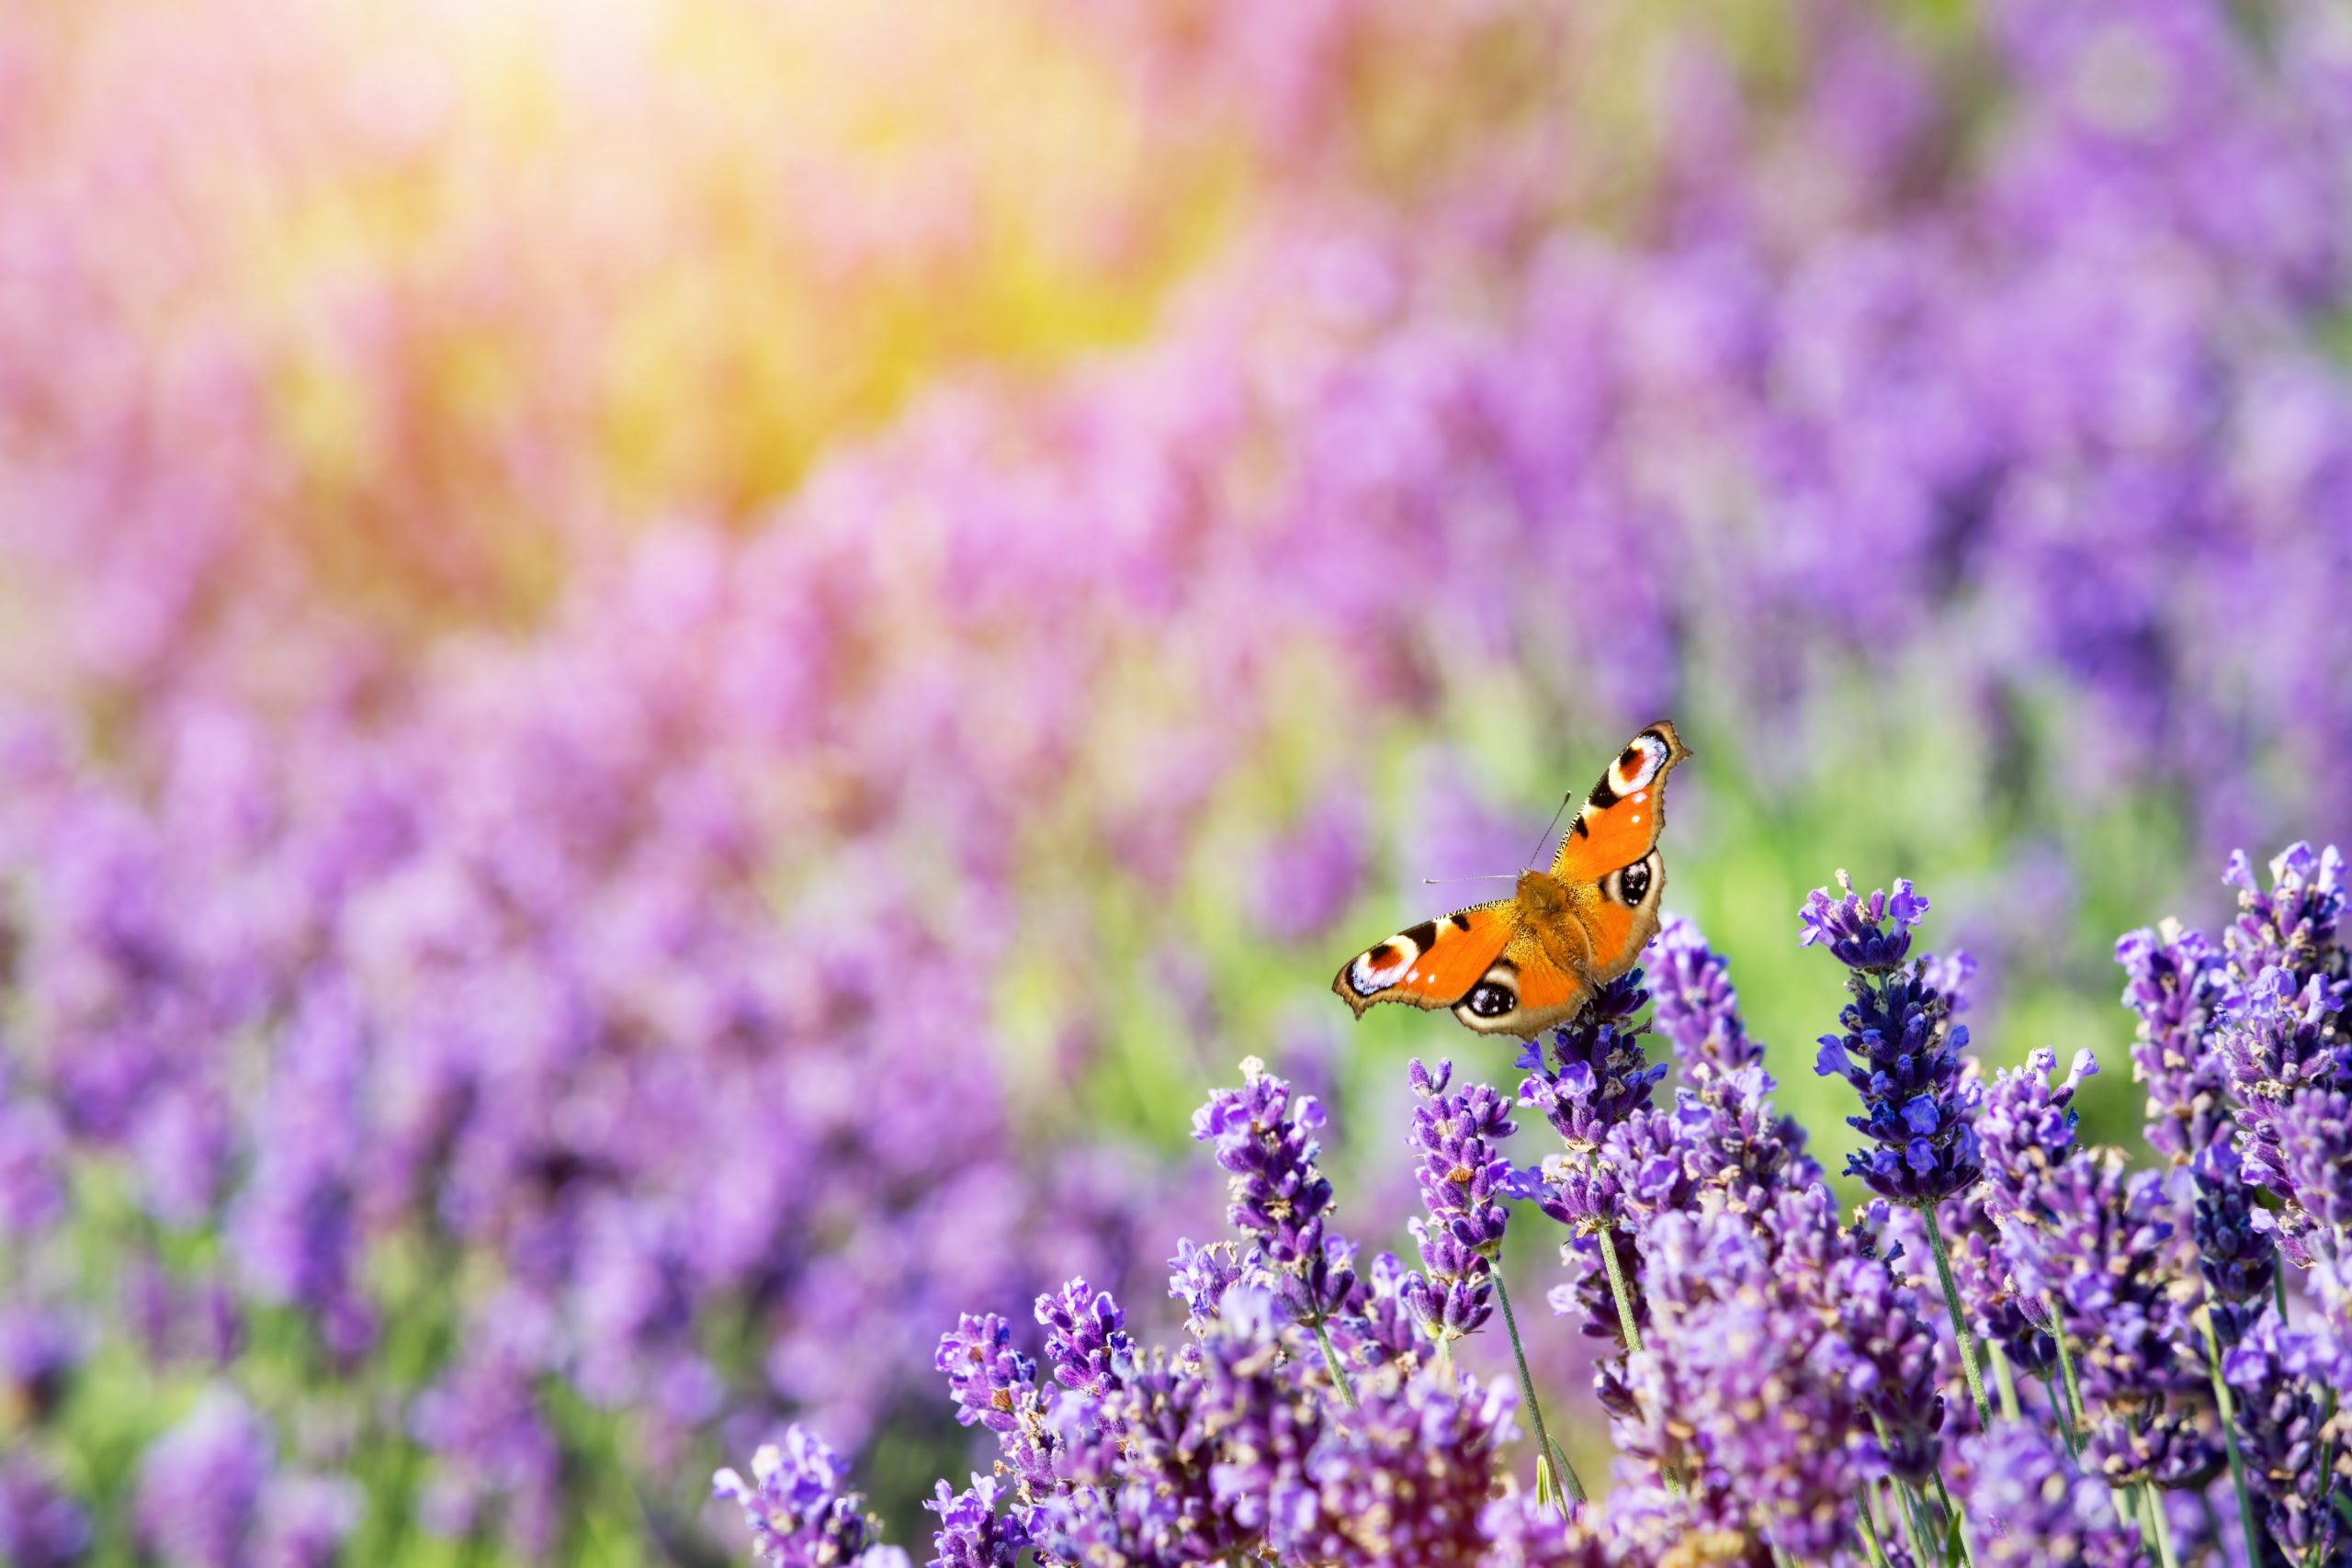 butterfly-sitting-on-lavender-flower-PWEDHCD-scaled.jpg